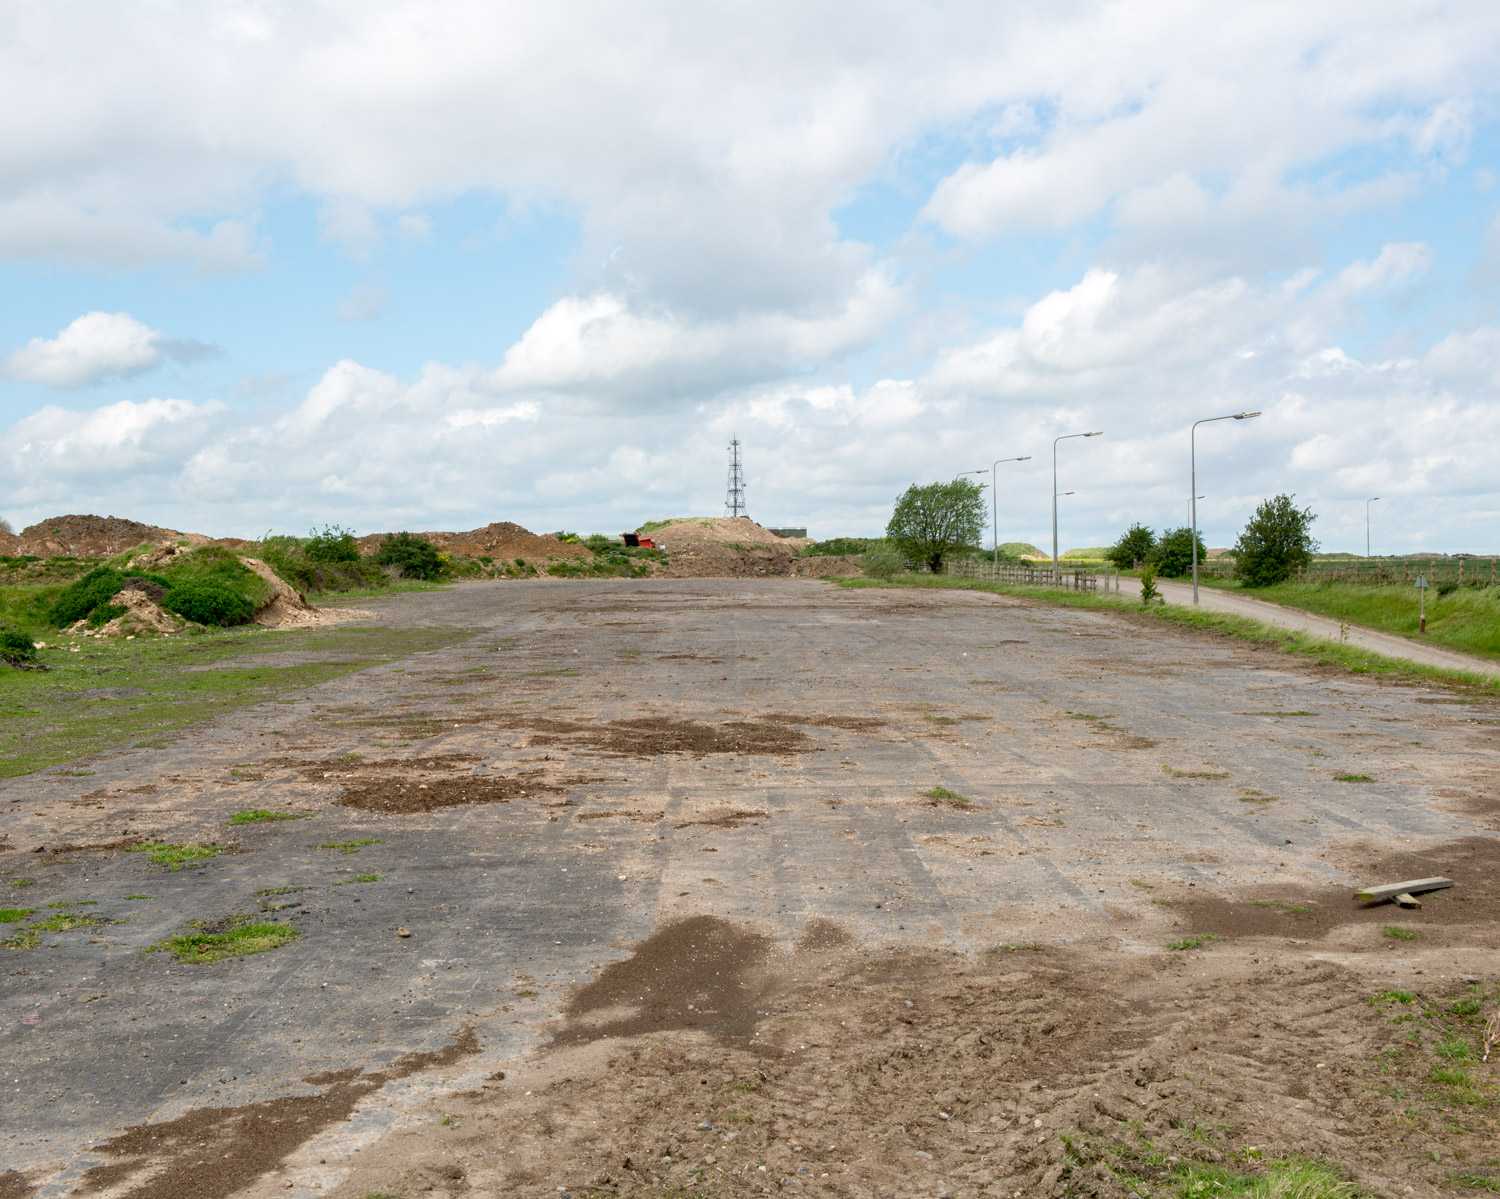 Runway 318 North, Elsham Wolds, Lincolnshire 2015